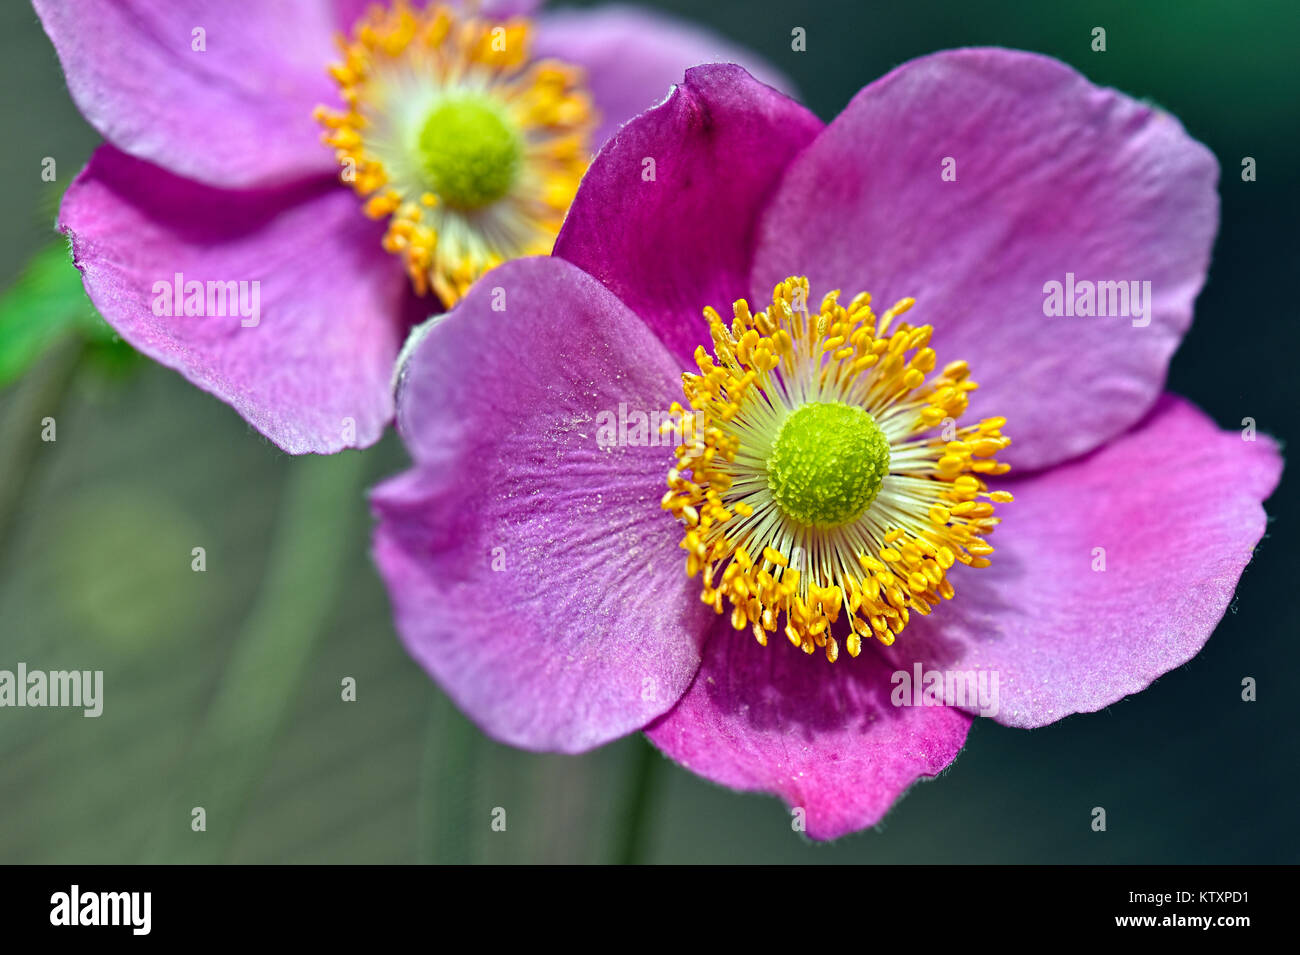 Flowers Of The World - Forget Me Not - Stock Image